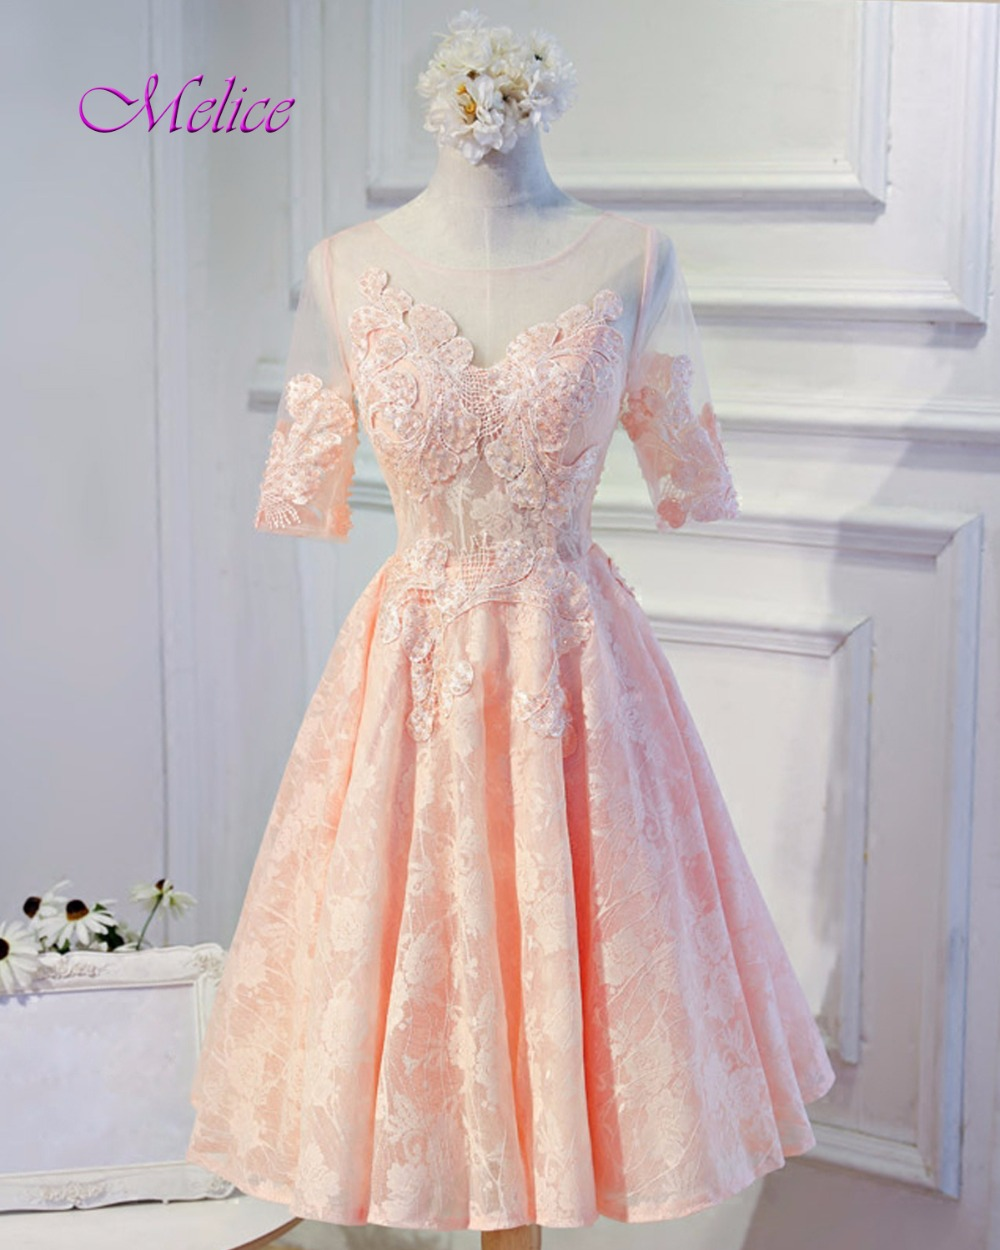 Melice New Fashion O neck Half Sleeve Pink Princess Lace Prom Dress 2019  Graceful Appliques Formal Party Gown Vestido de Festa-in Prom Dresses from  Weddings ... 600e4d6a3e03